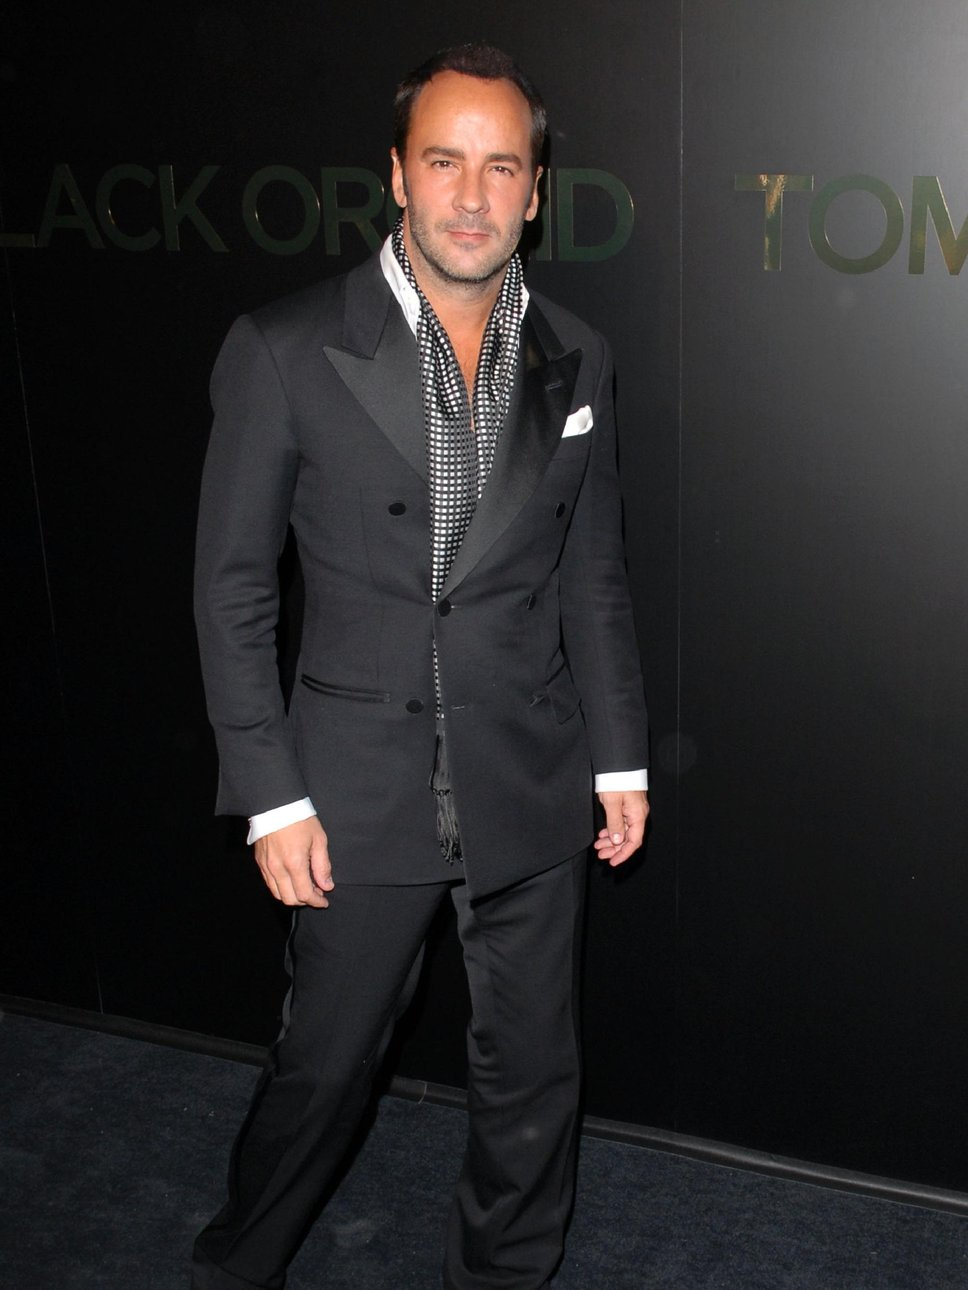 956394 Tom Ford Wallpapers 968x1290